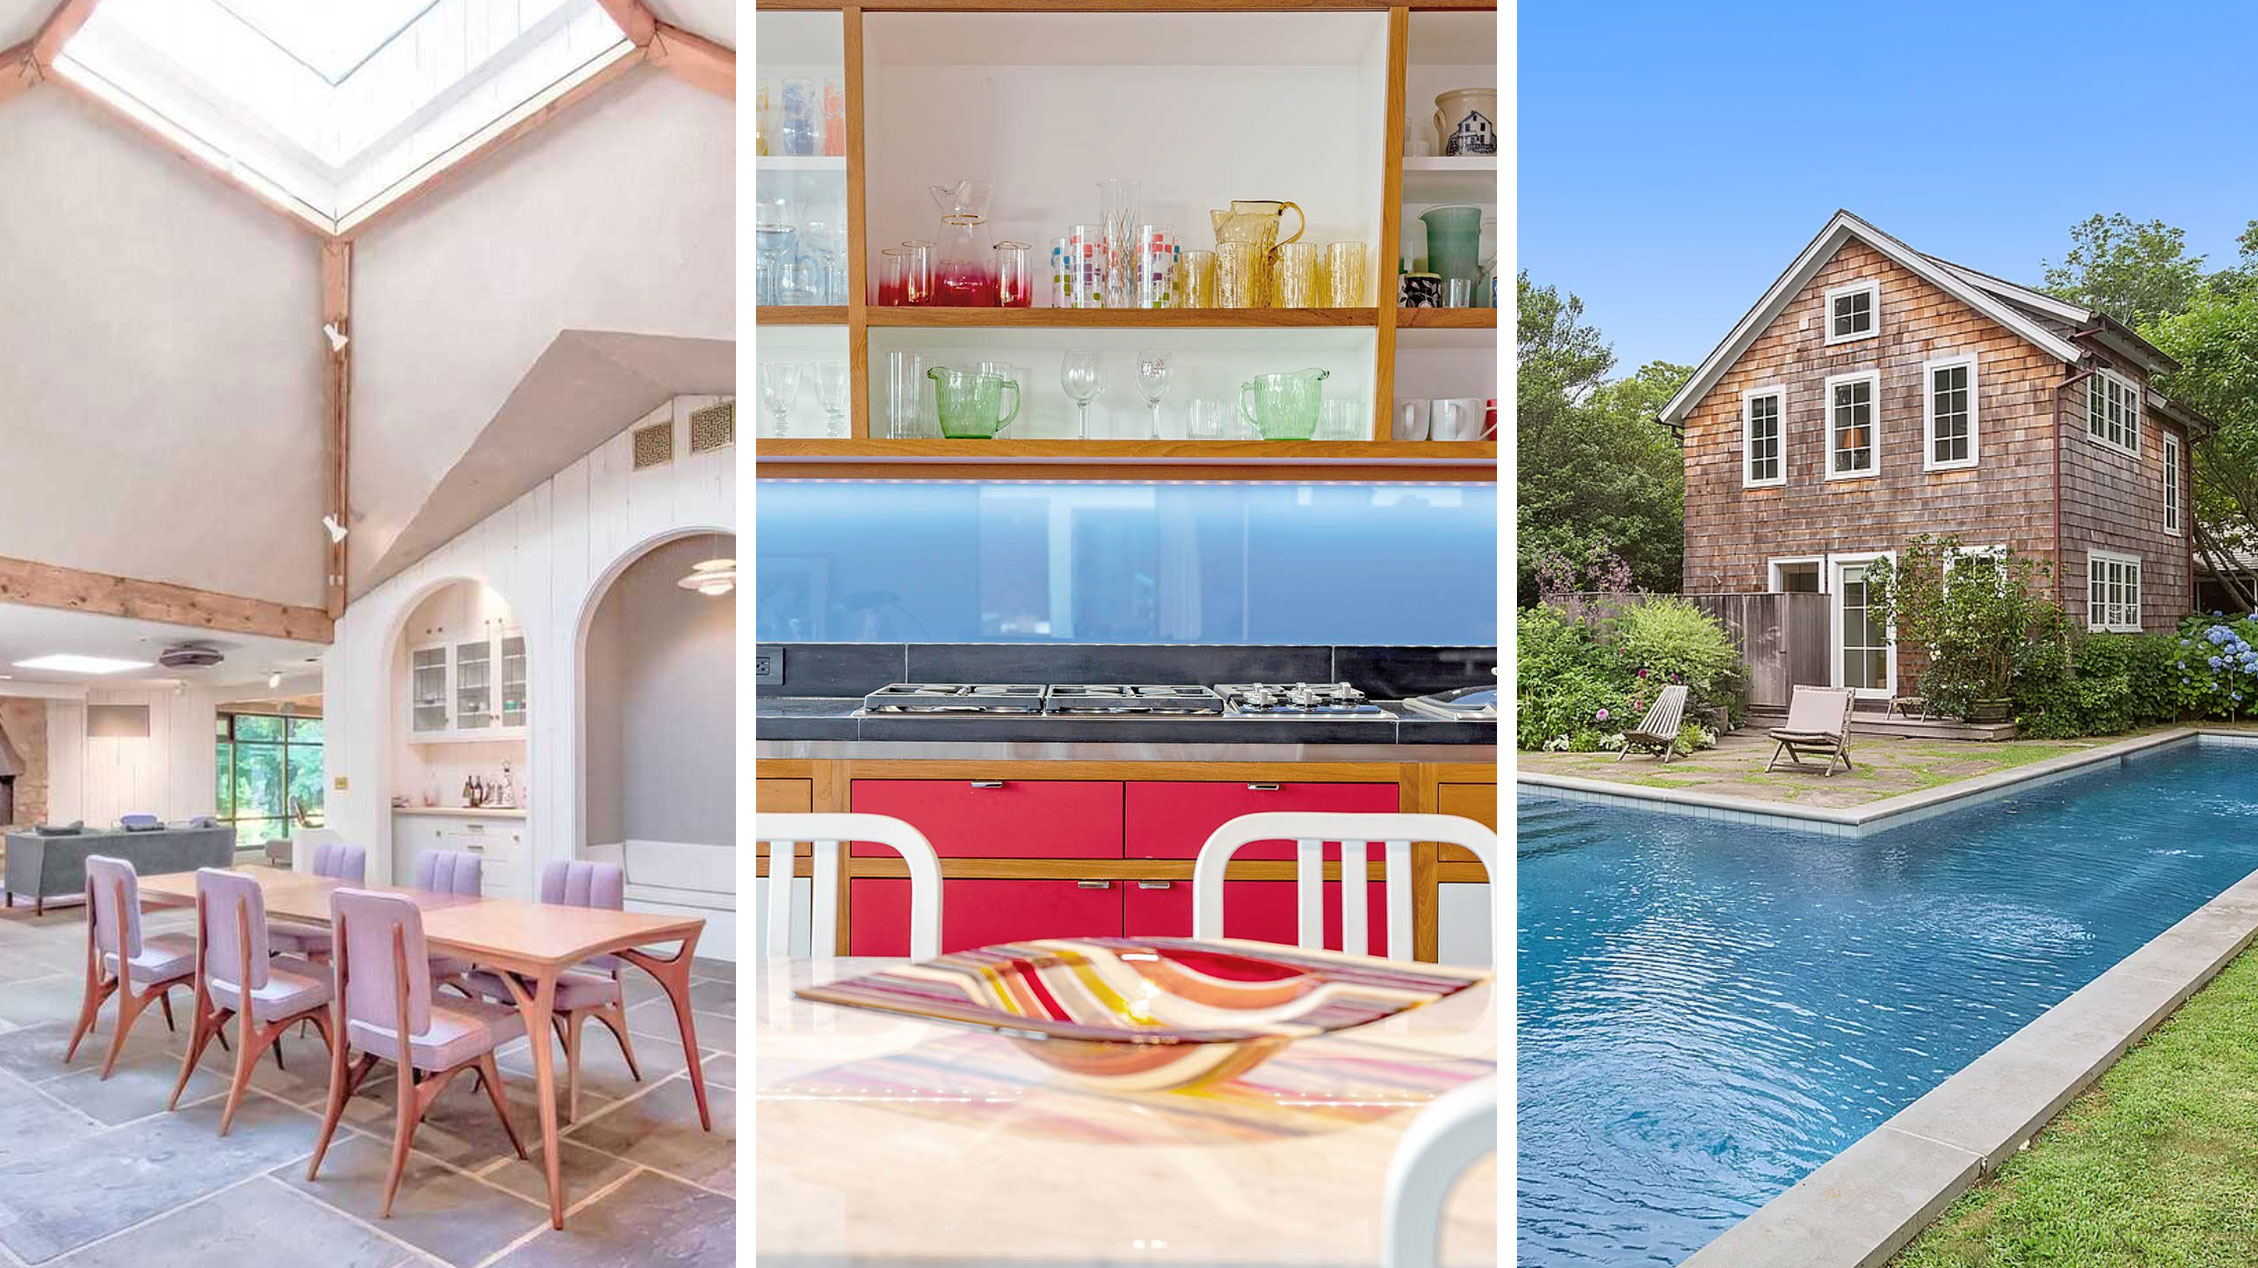 Three-panel collage of a bright room, dining table, and shingle house with pool.